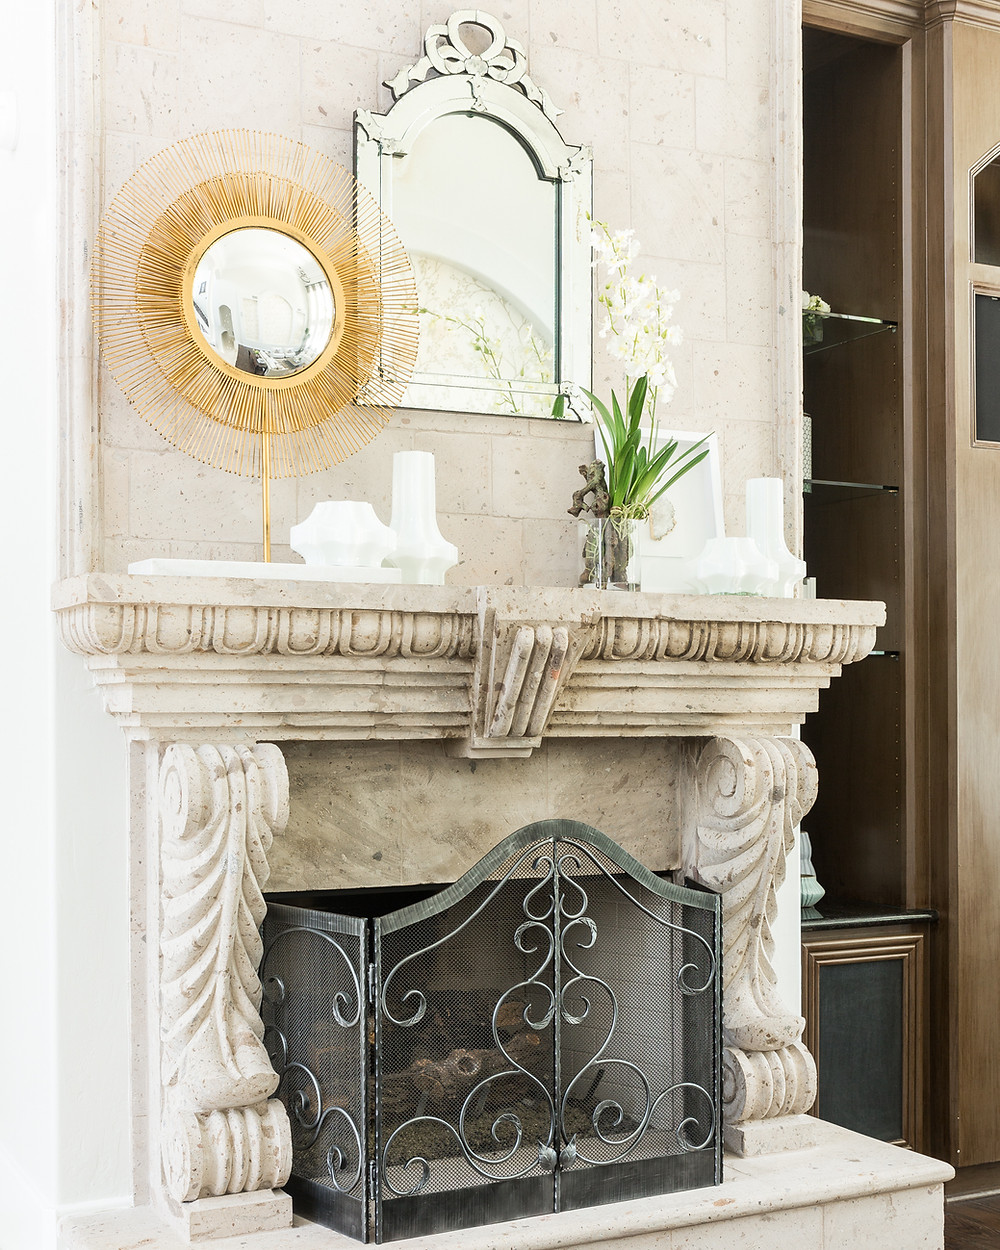 Stone fireplace with mirror and gold accent sunburst